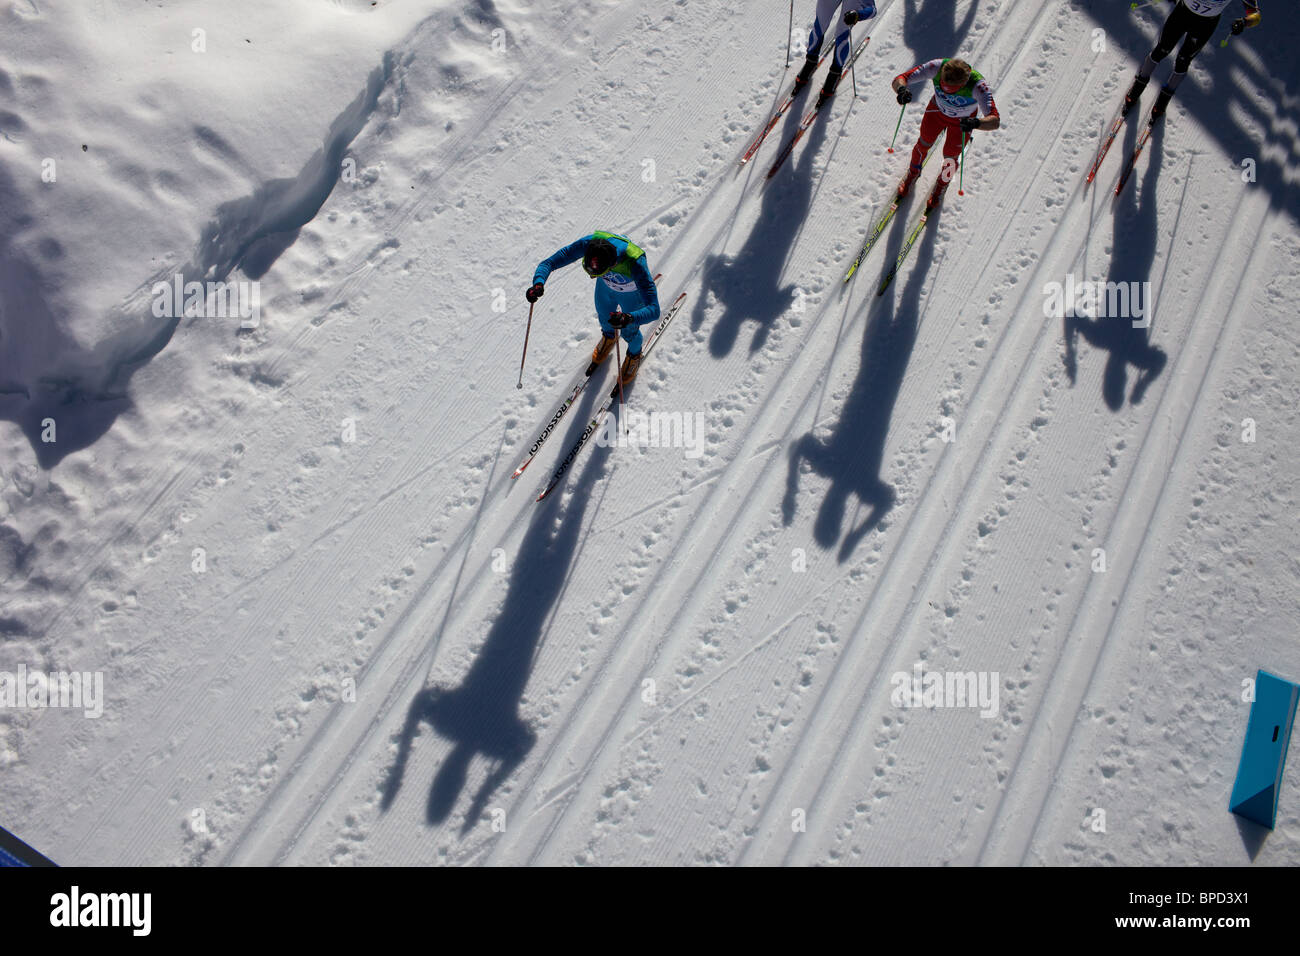 Winter Olympics, Vancouver, 2010 The shadows of athletes cast on the surface of the snow during the Men's 30km Pursuit. Stock Photo